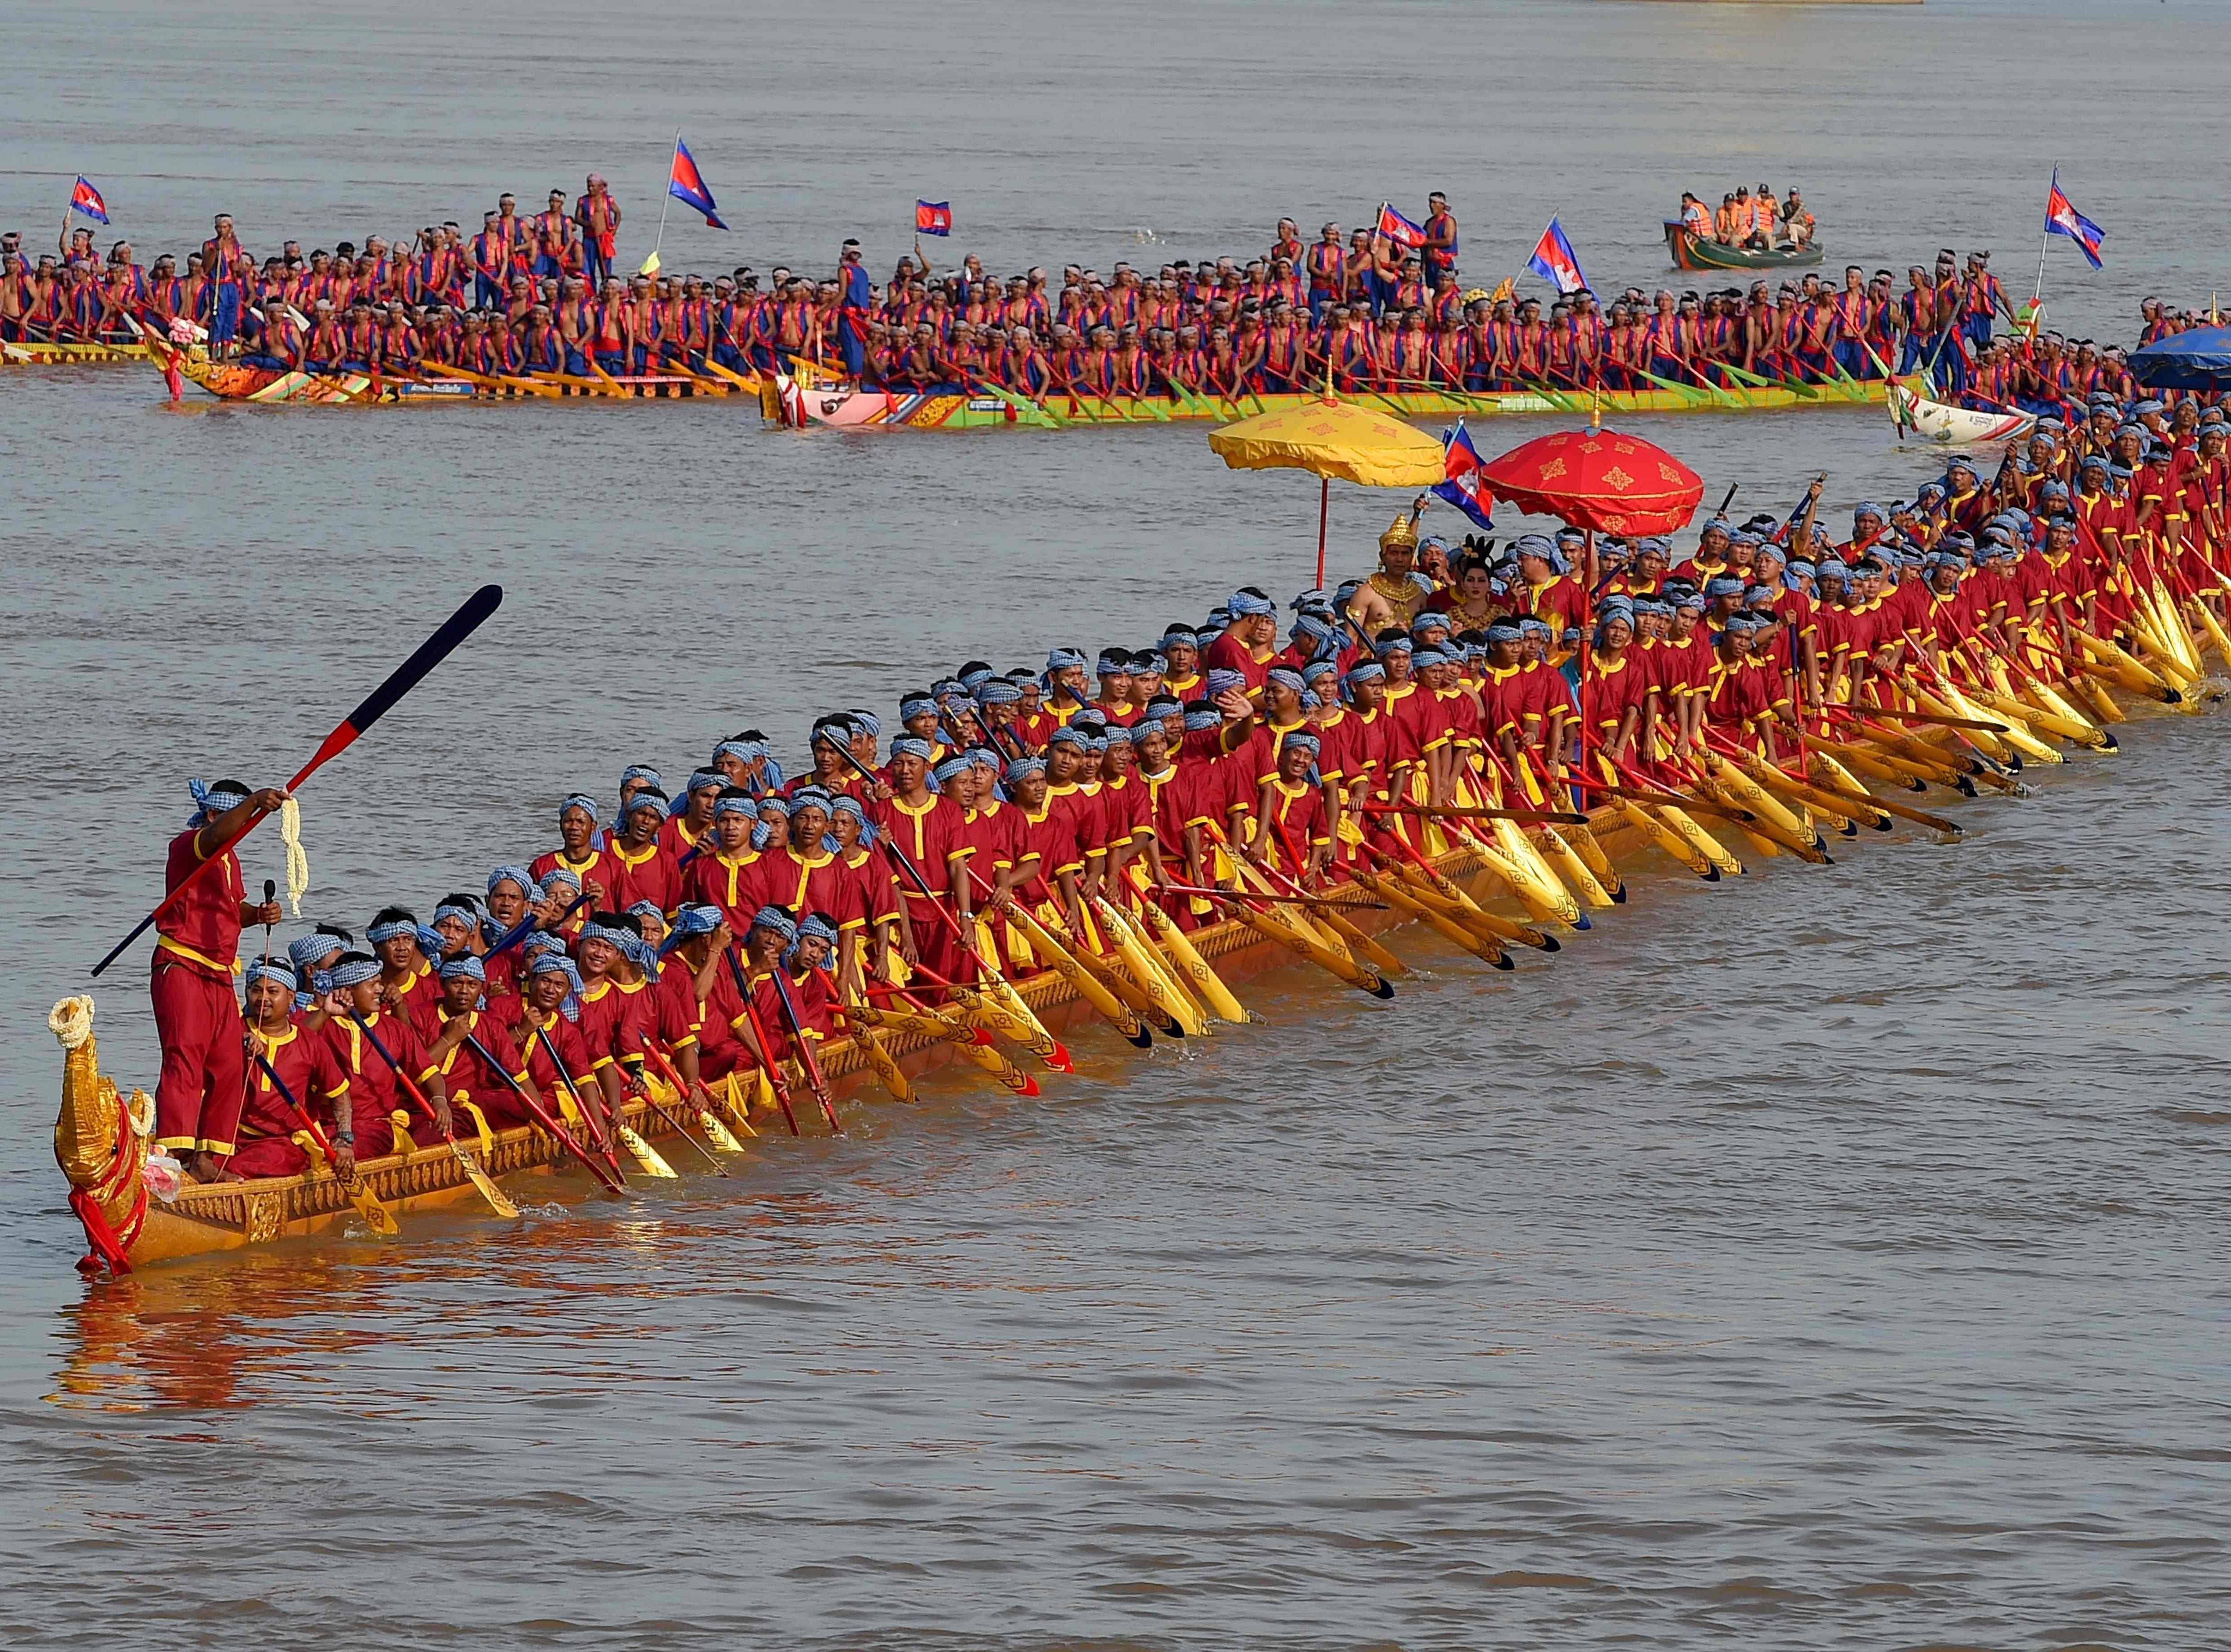 The world's longest dragon boat carrying 179 rowers sails along the Mekong river during a ceremony in Prey Veng, Cambodia on Nov. 12, 2018.